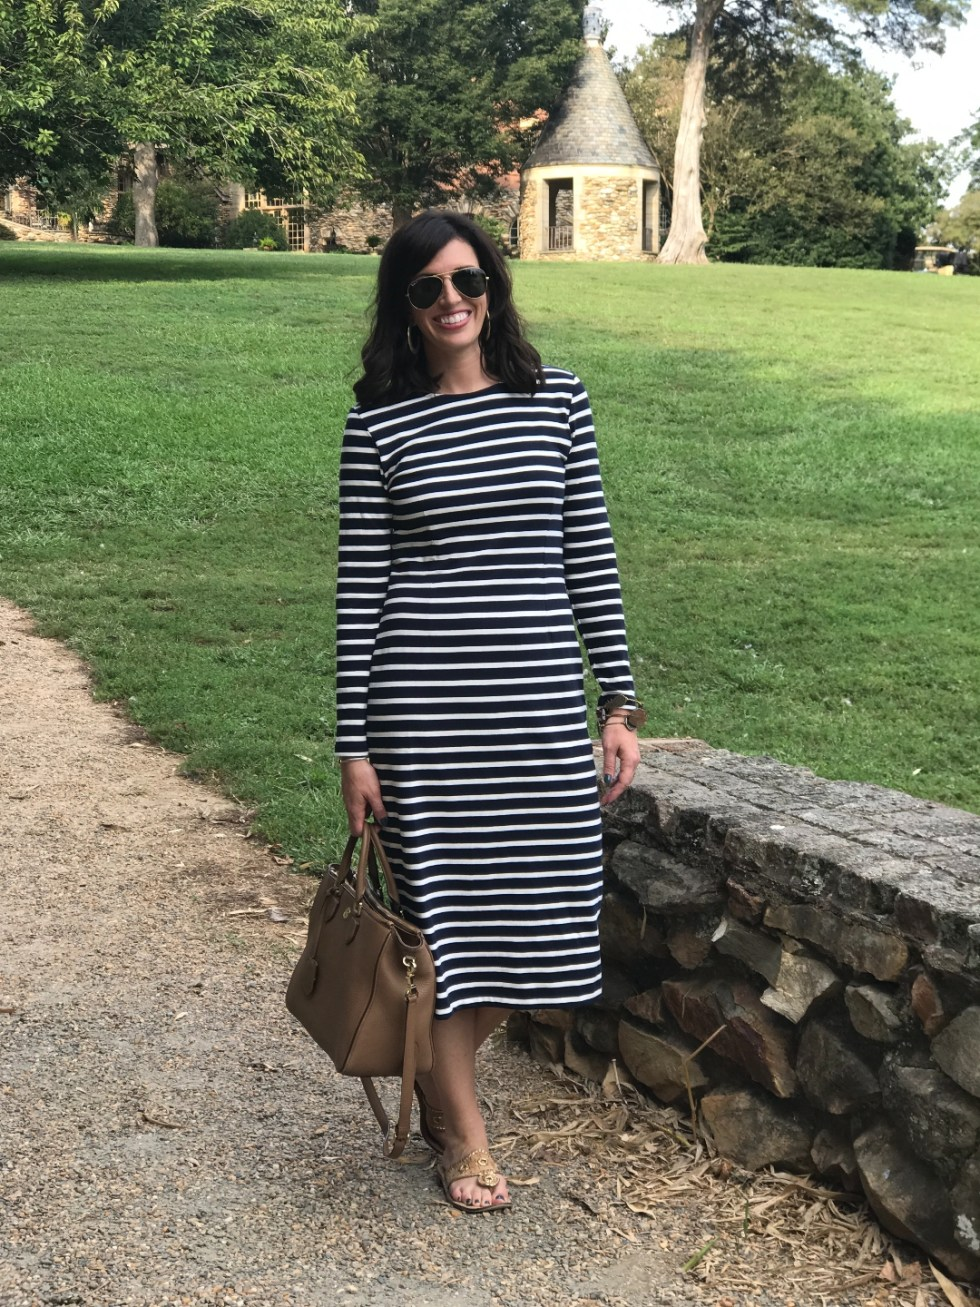 Building Your Spring Wardrobe Capsule - I'm Fixin' To - @mbg0112 | | Spring wardrobe capsule essentials featured by top US fashion blog, I'm Fixin' To: striped maxi dress